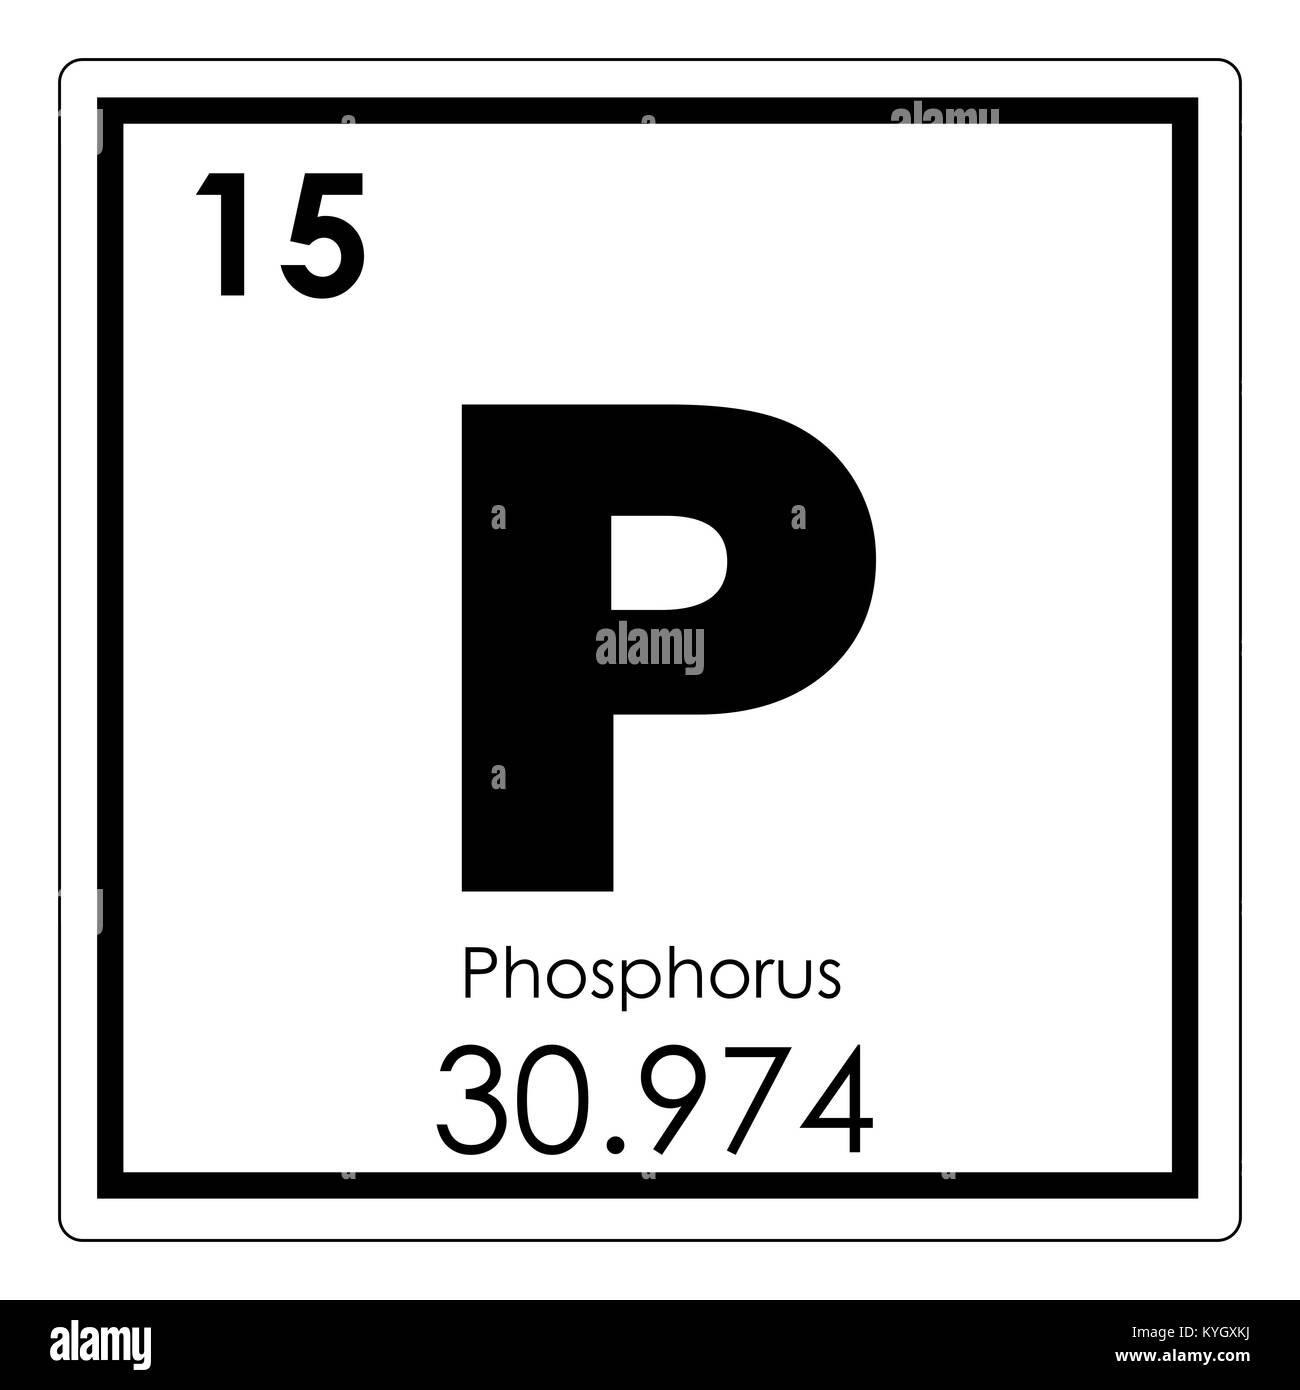 Phosphorus chemical element periodic table science symbol stock phosphorus chemical element periodic table science symbol urtaz Images